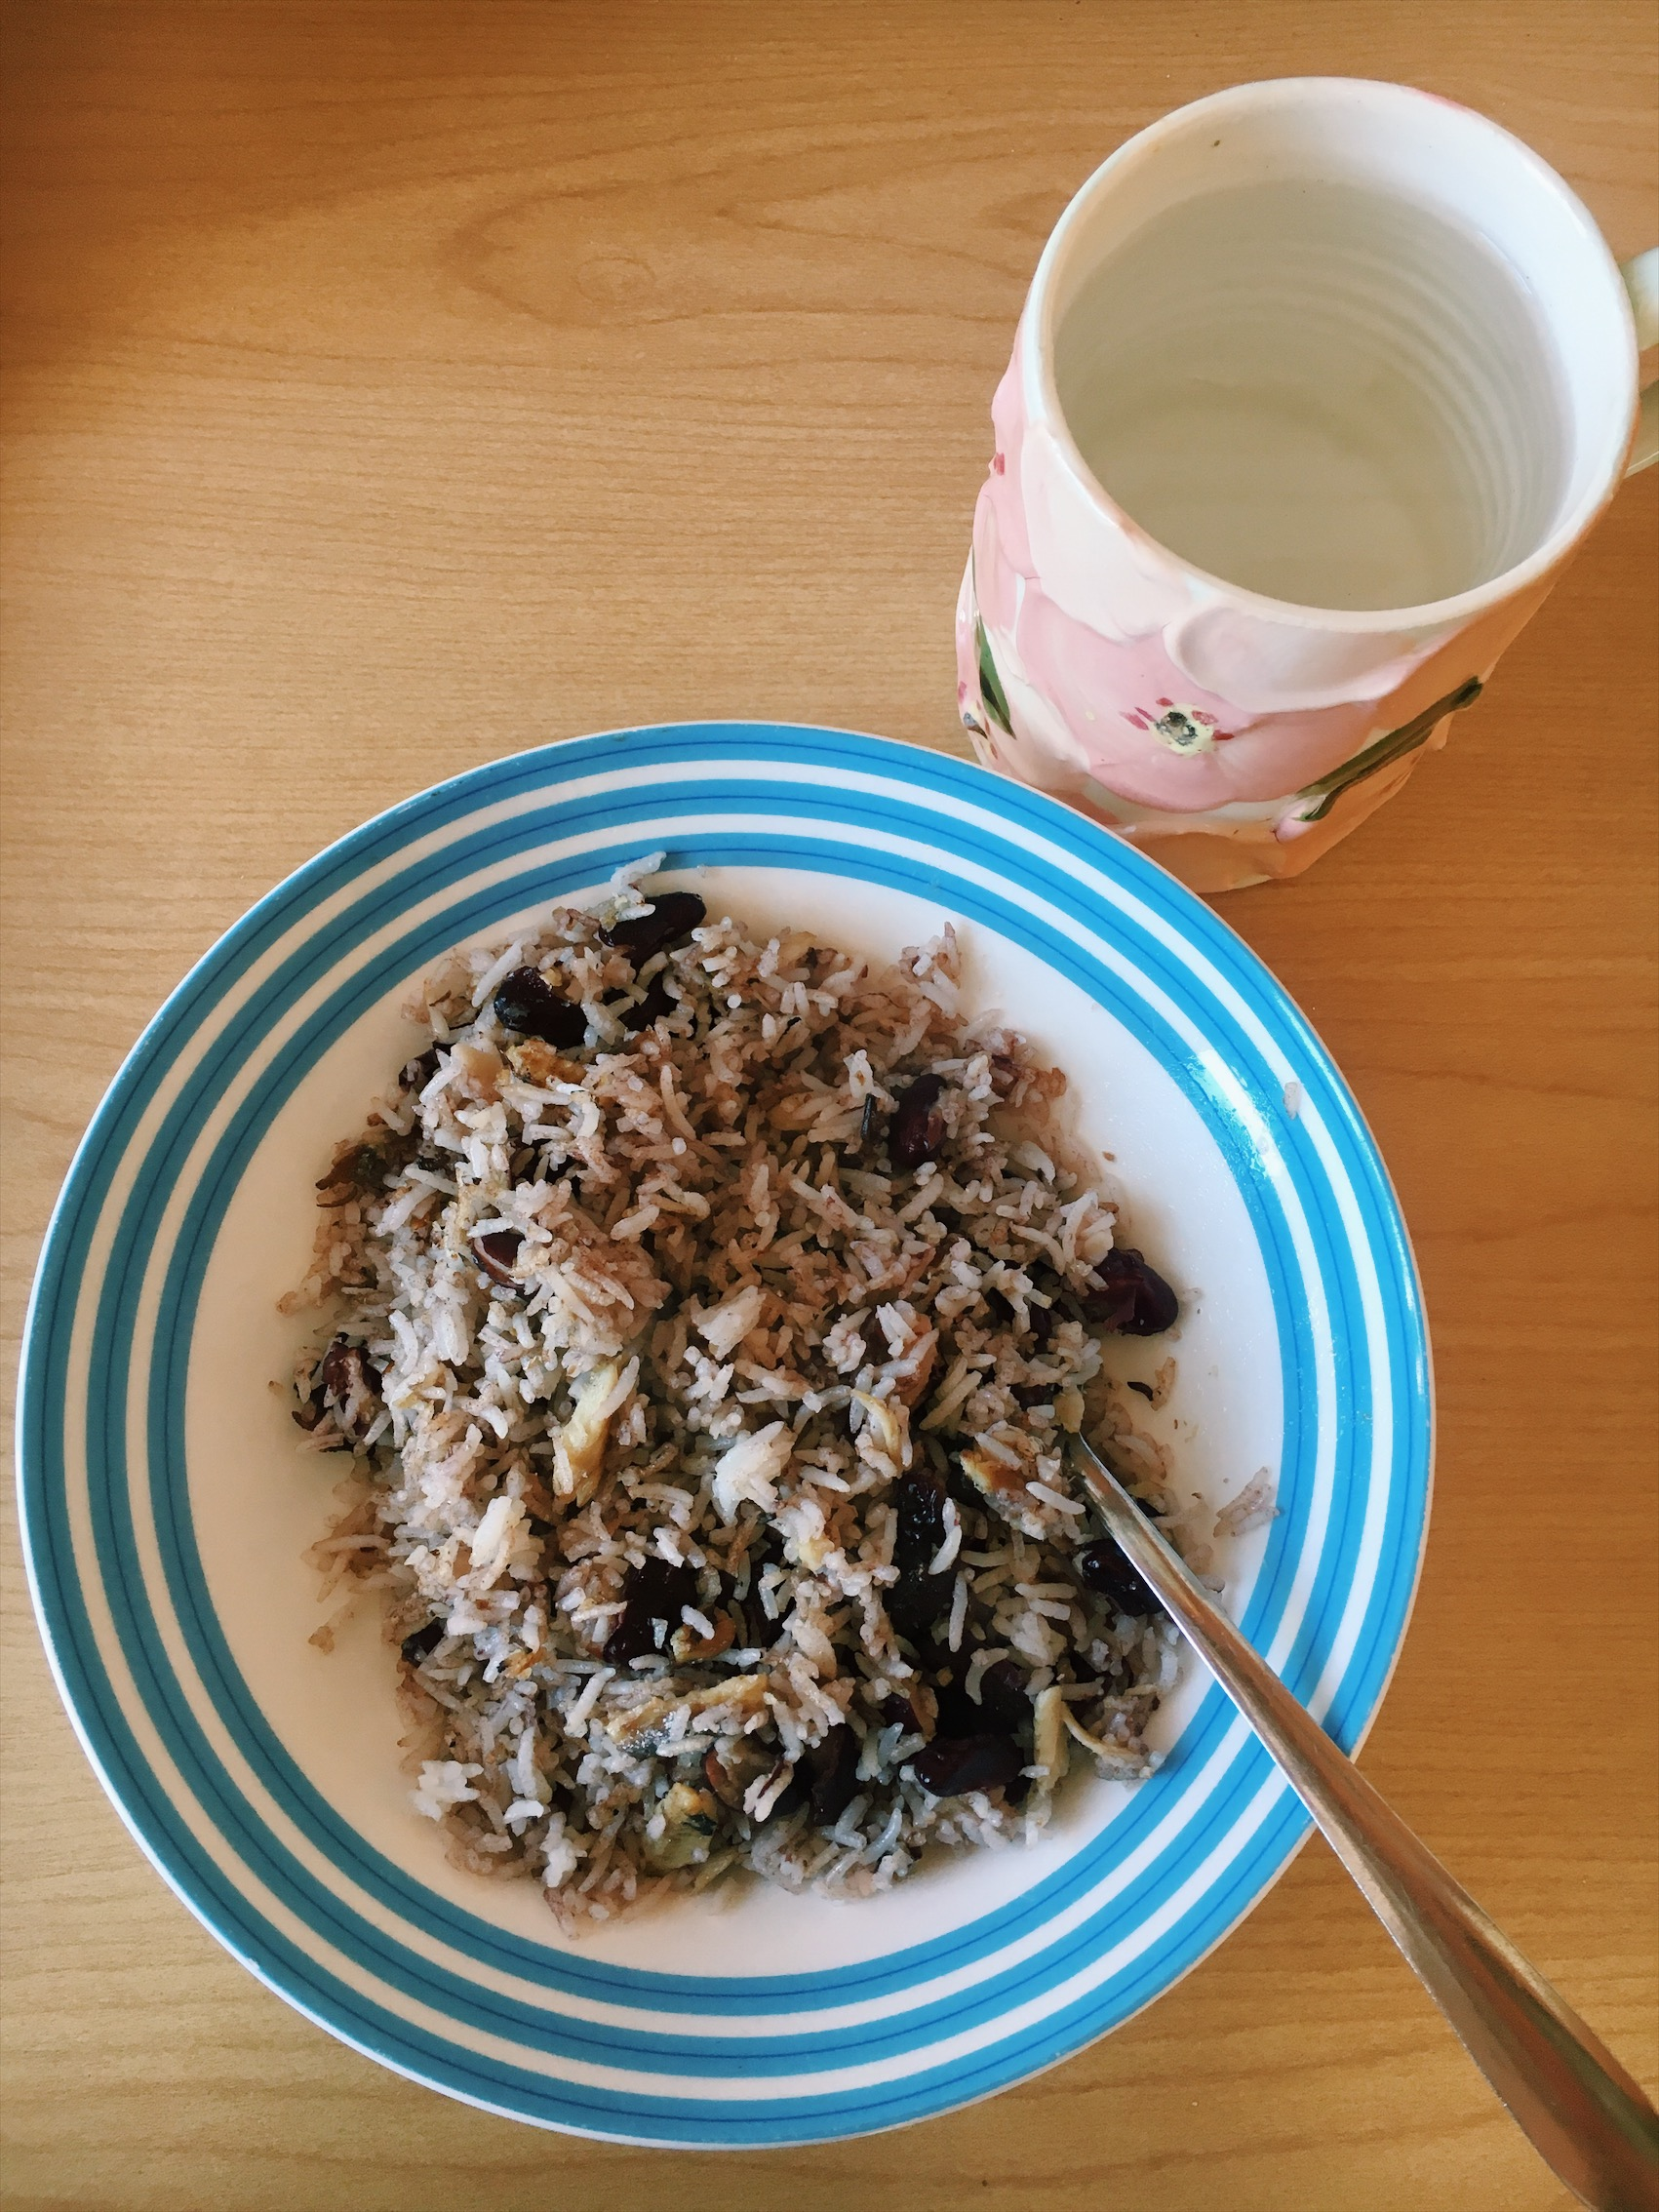 Rice, kidney beans, kale, and some garlic with a lovely cup of hot water.